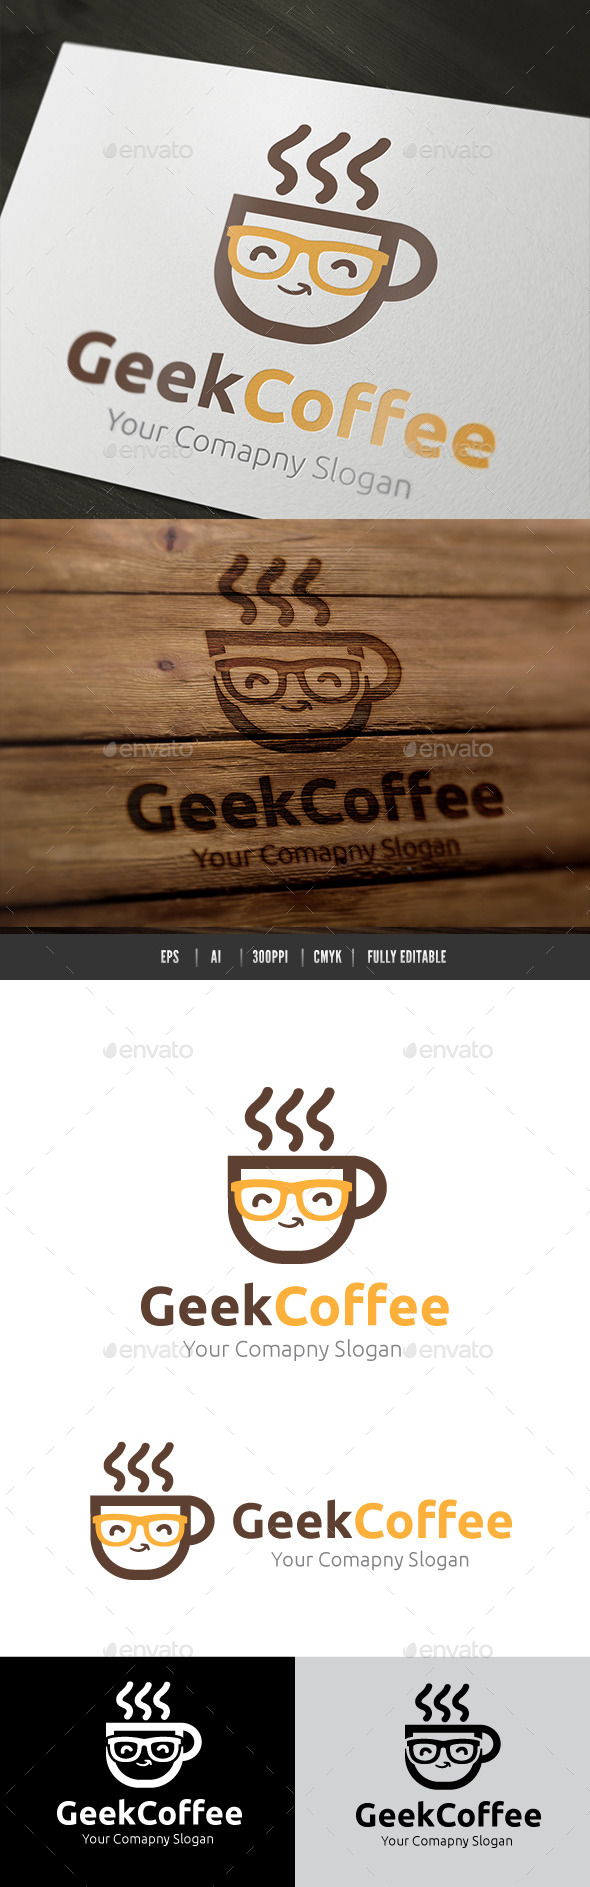 GraphicRiver Geek Coffee 10382518